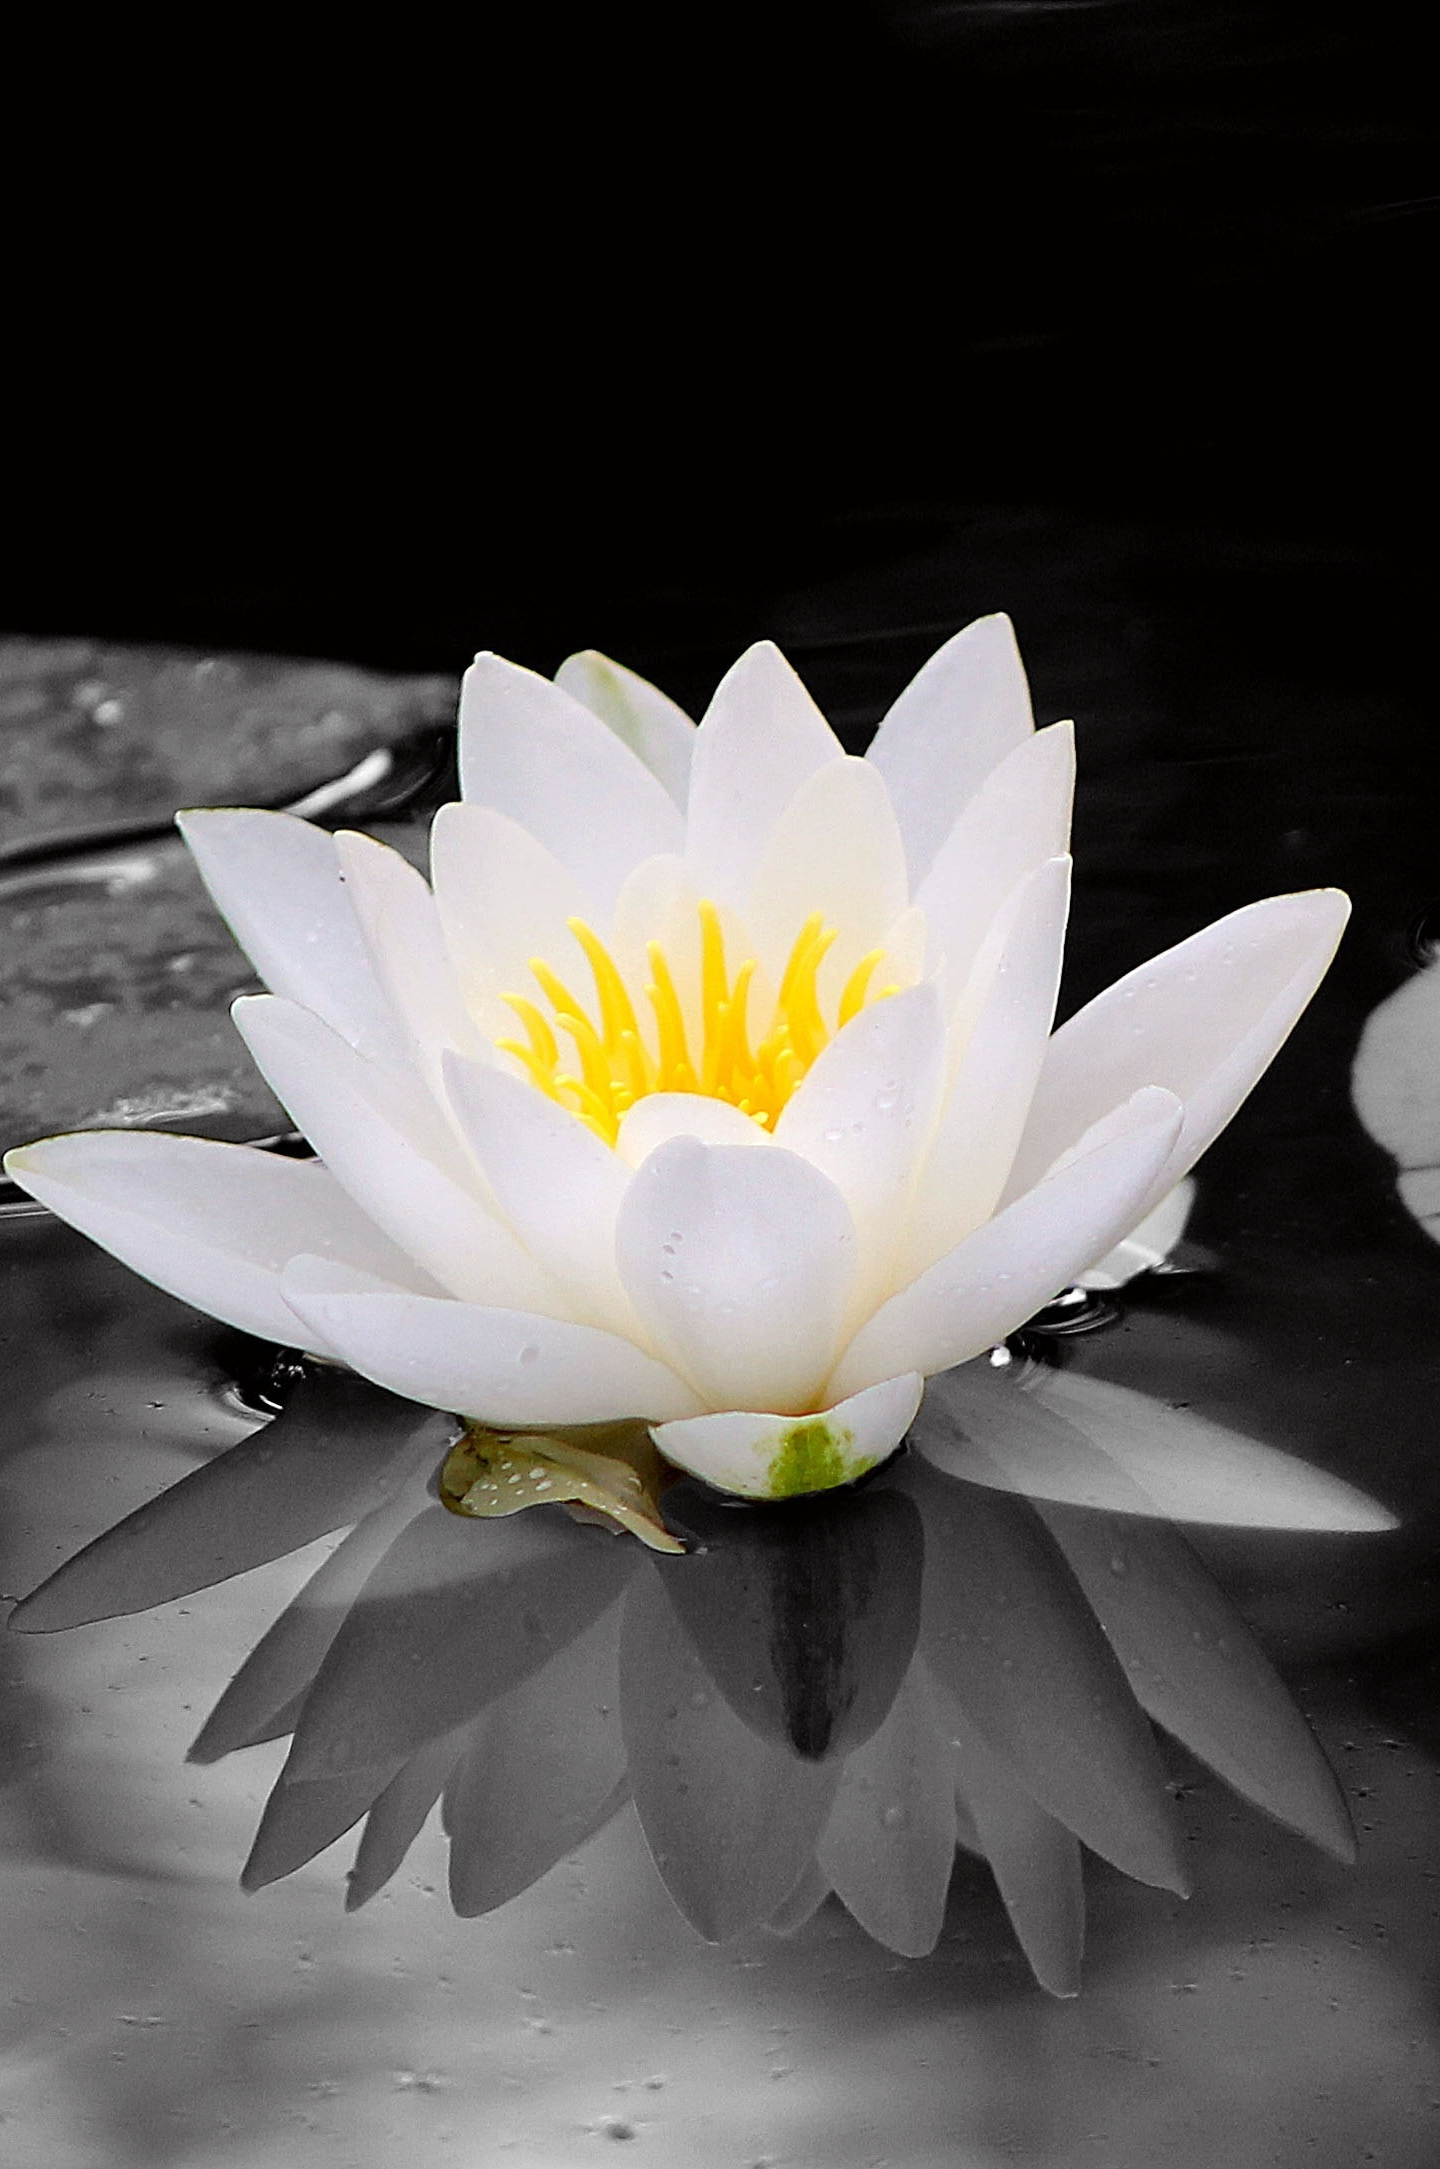 Download 1440x2880 Wallpaper White Water Lily Flowers Pond